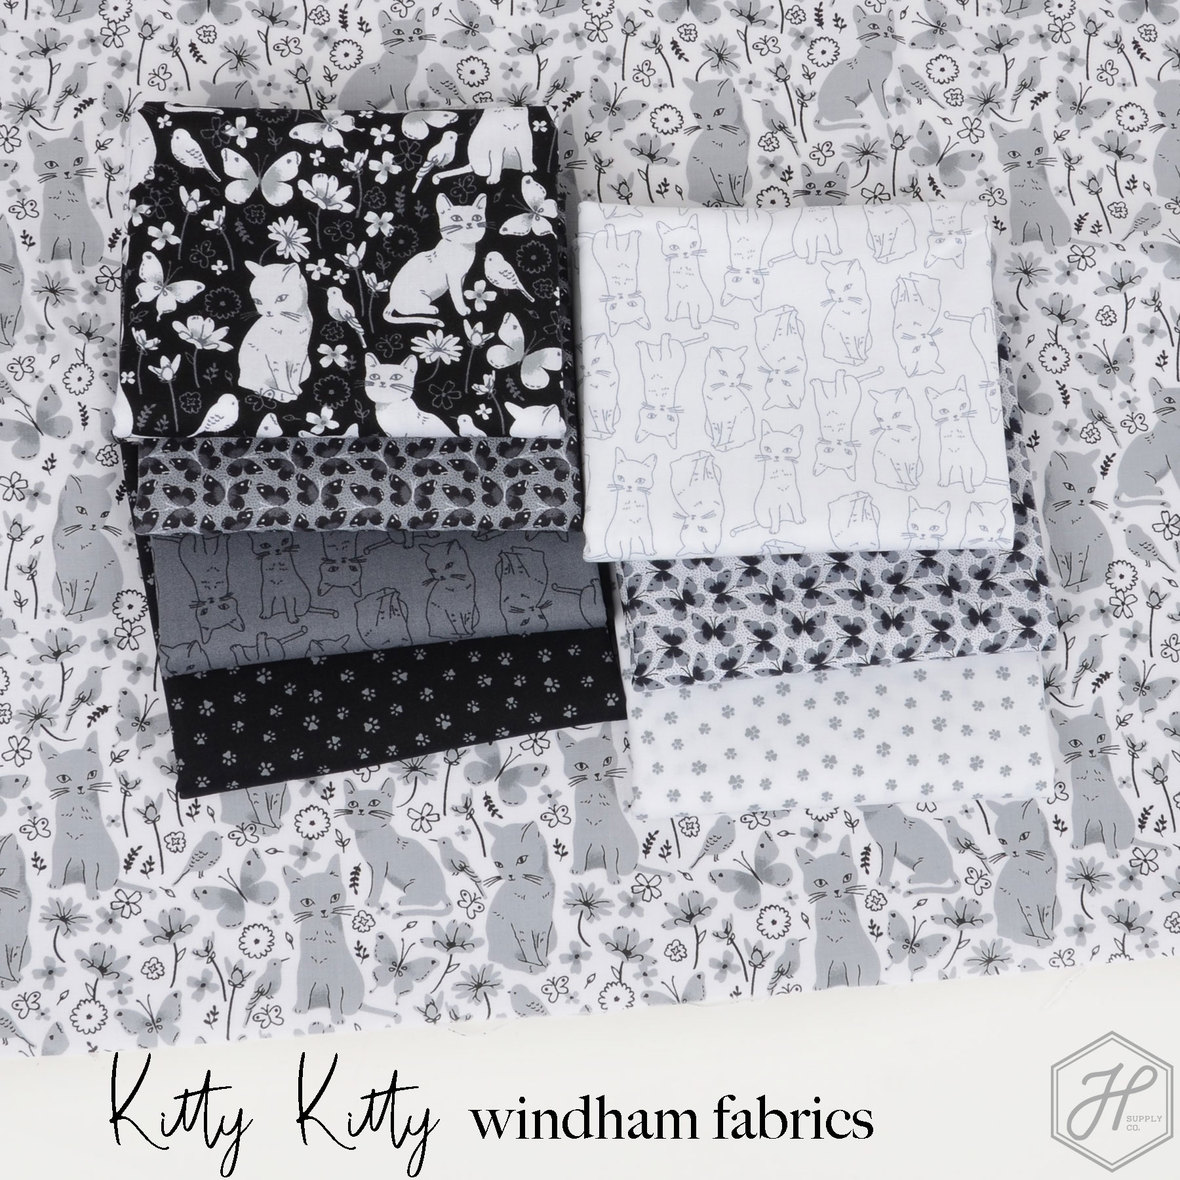 Kitty-Kitty-Fabric-from-Windham-at-Hawthorne-Supply-Co